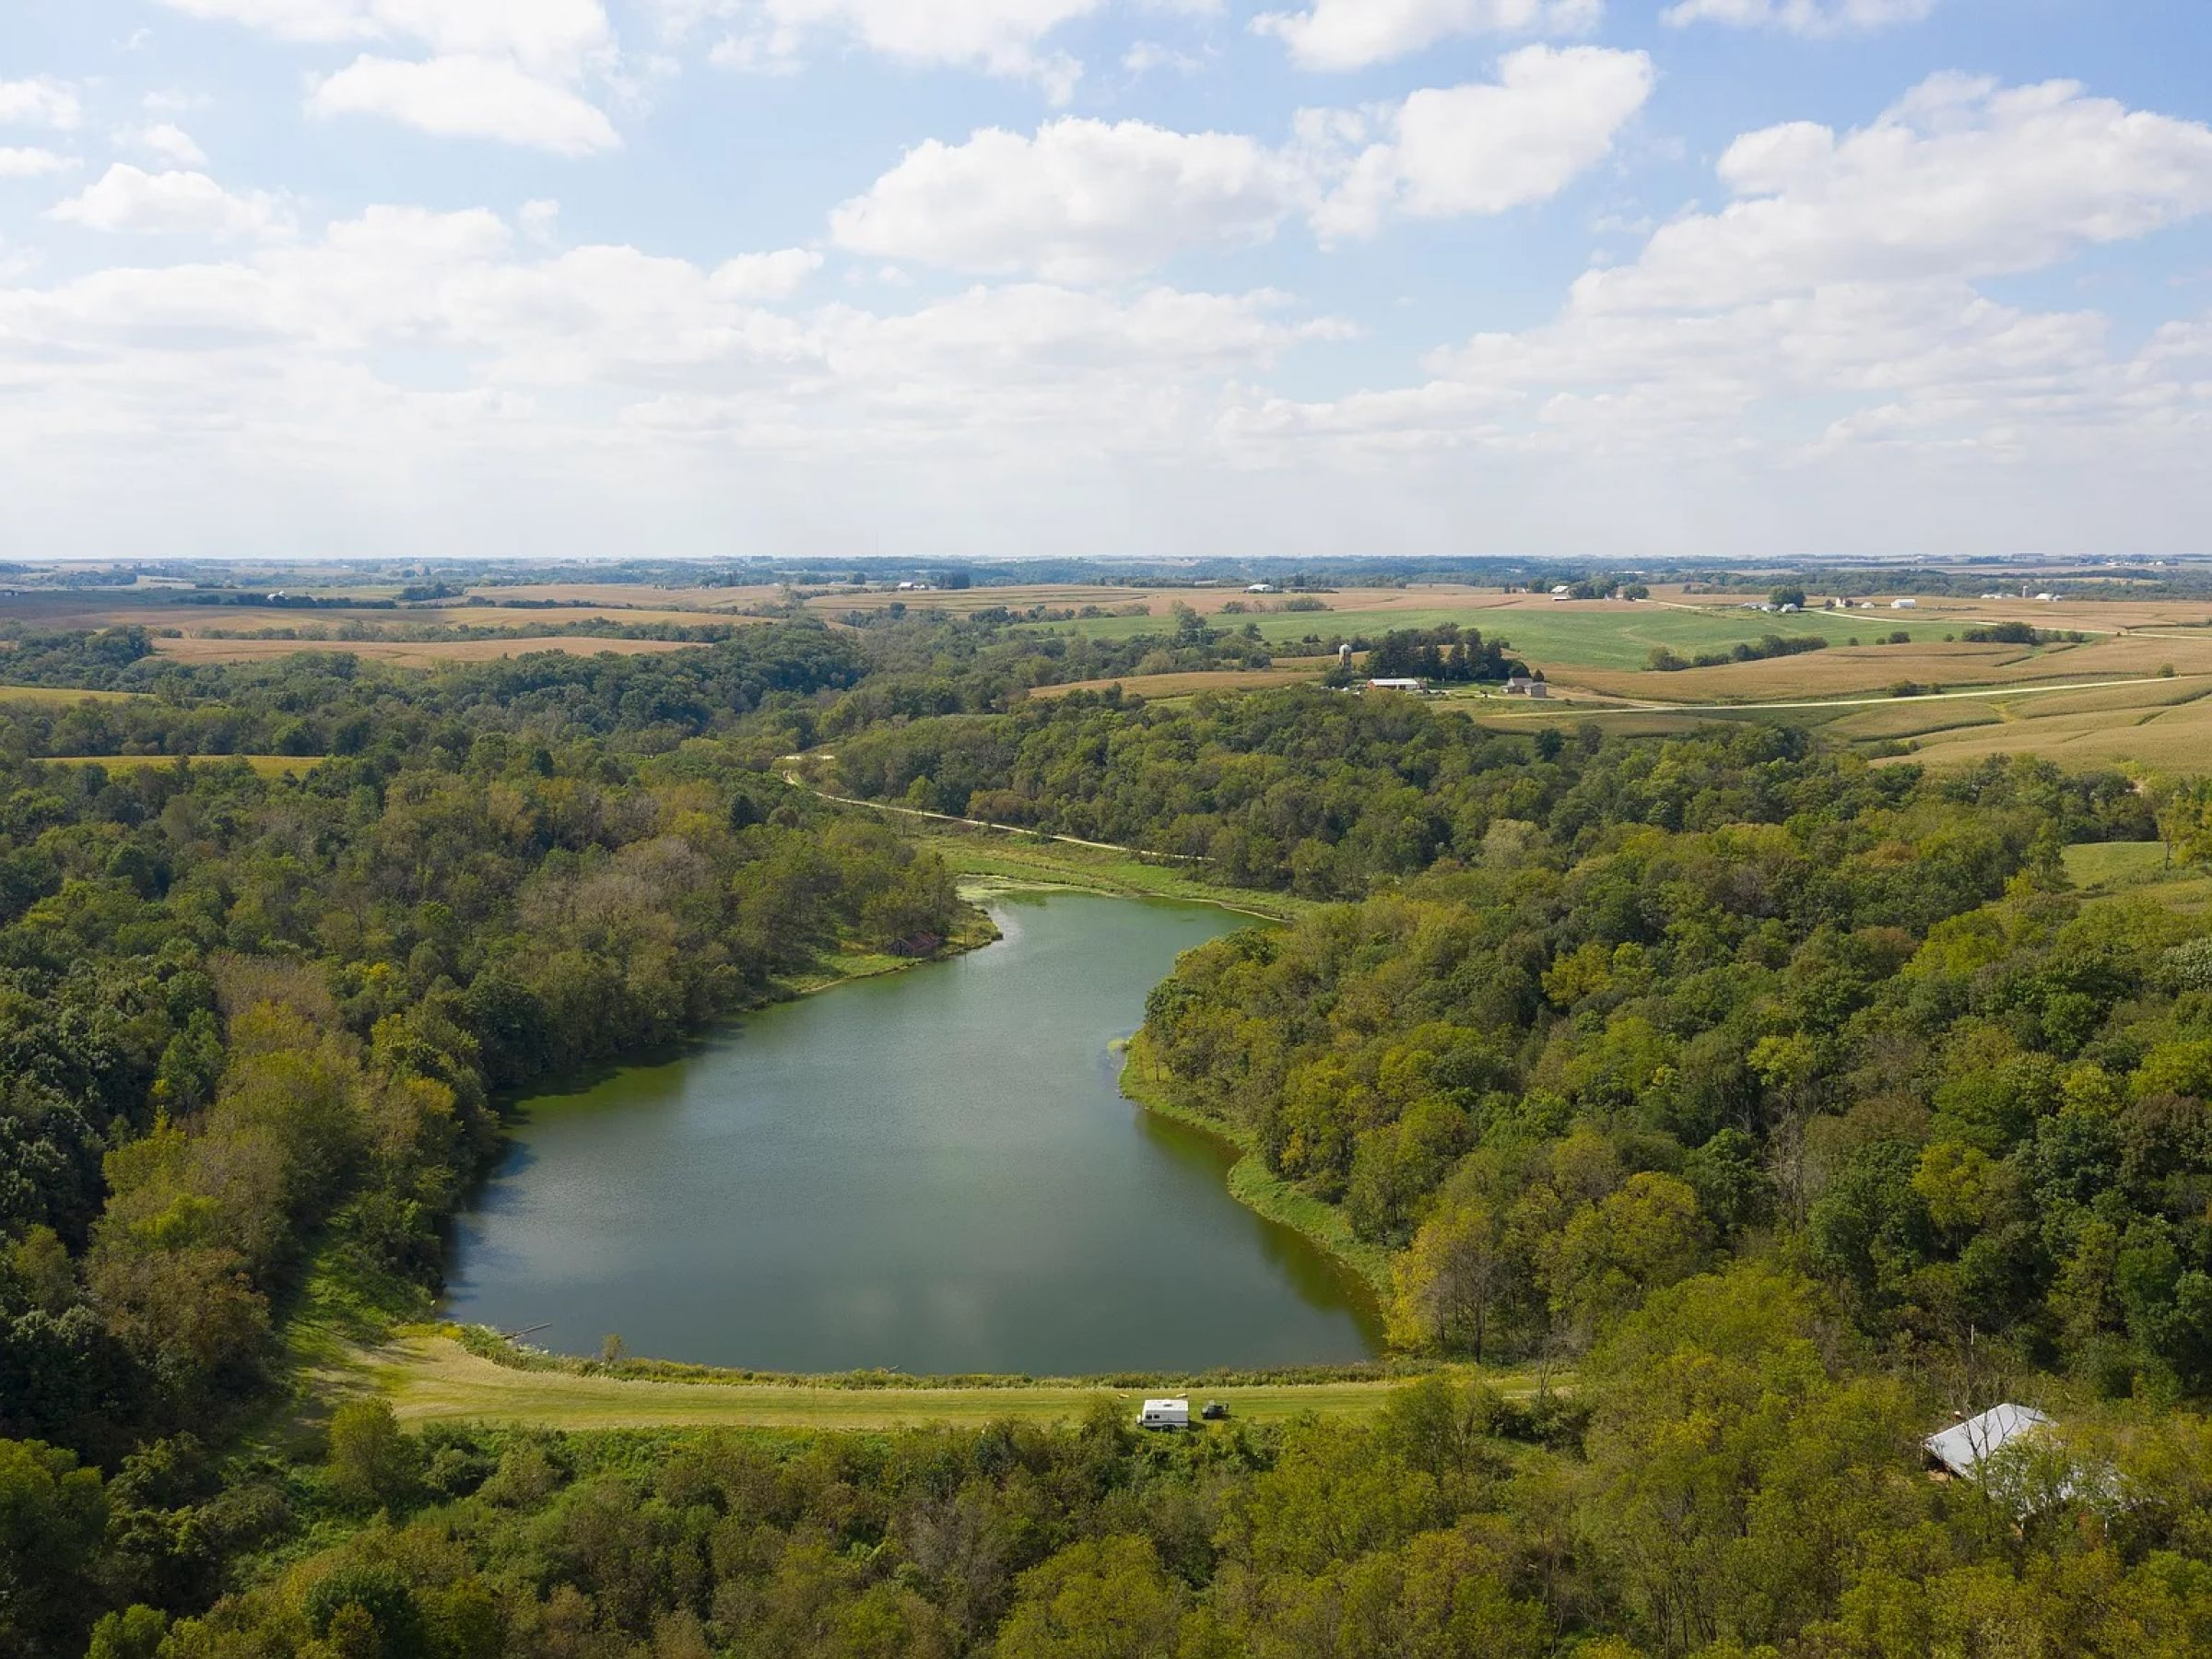 land-fayette-county-iowa-495-acres-listing-number-14992-1-2020-05-08-210238.jpg